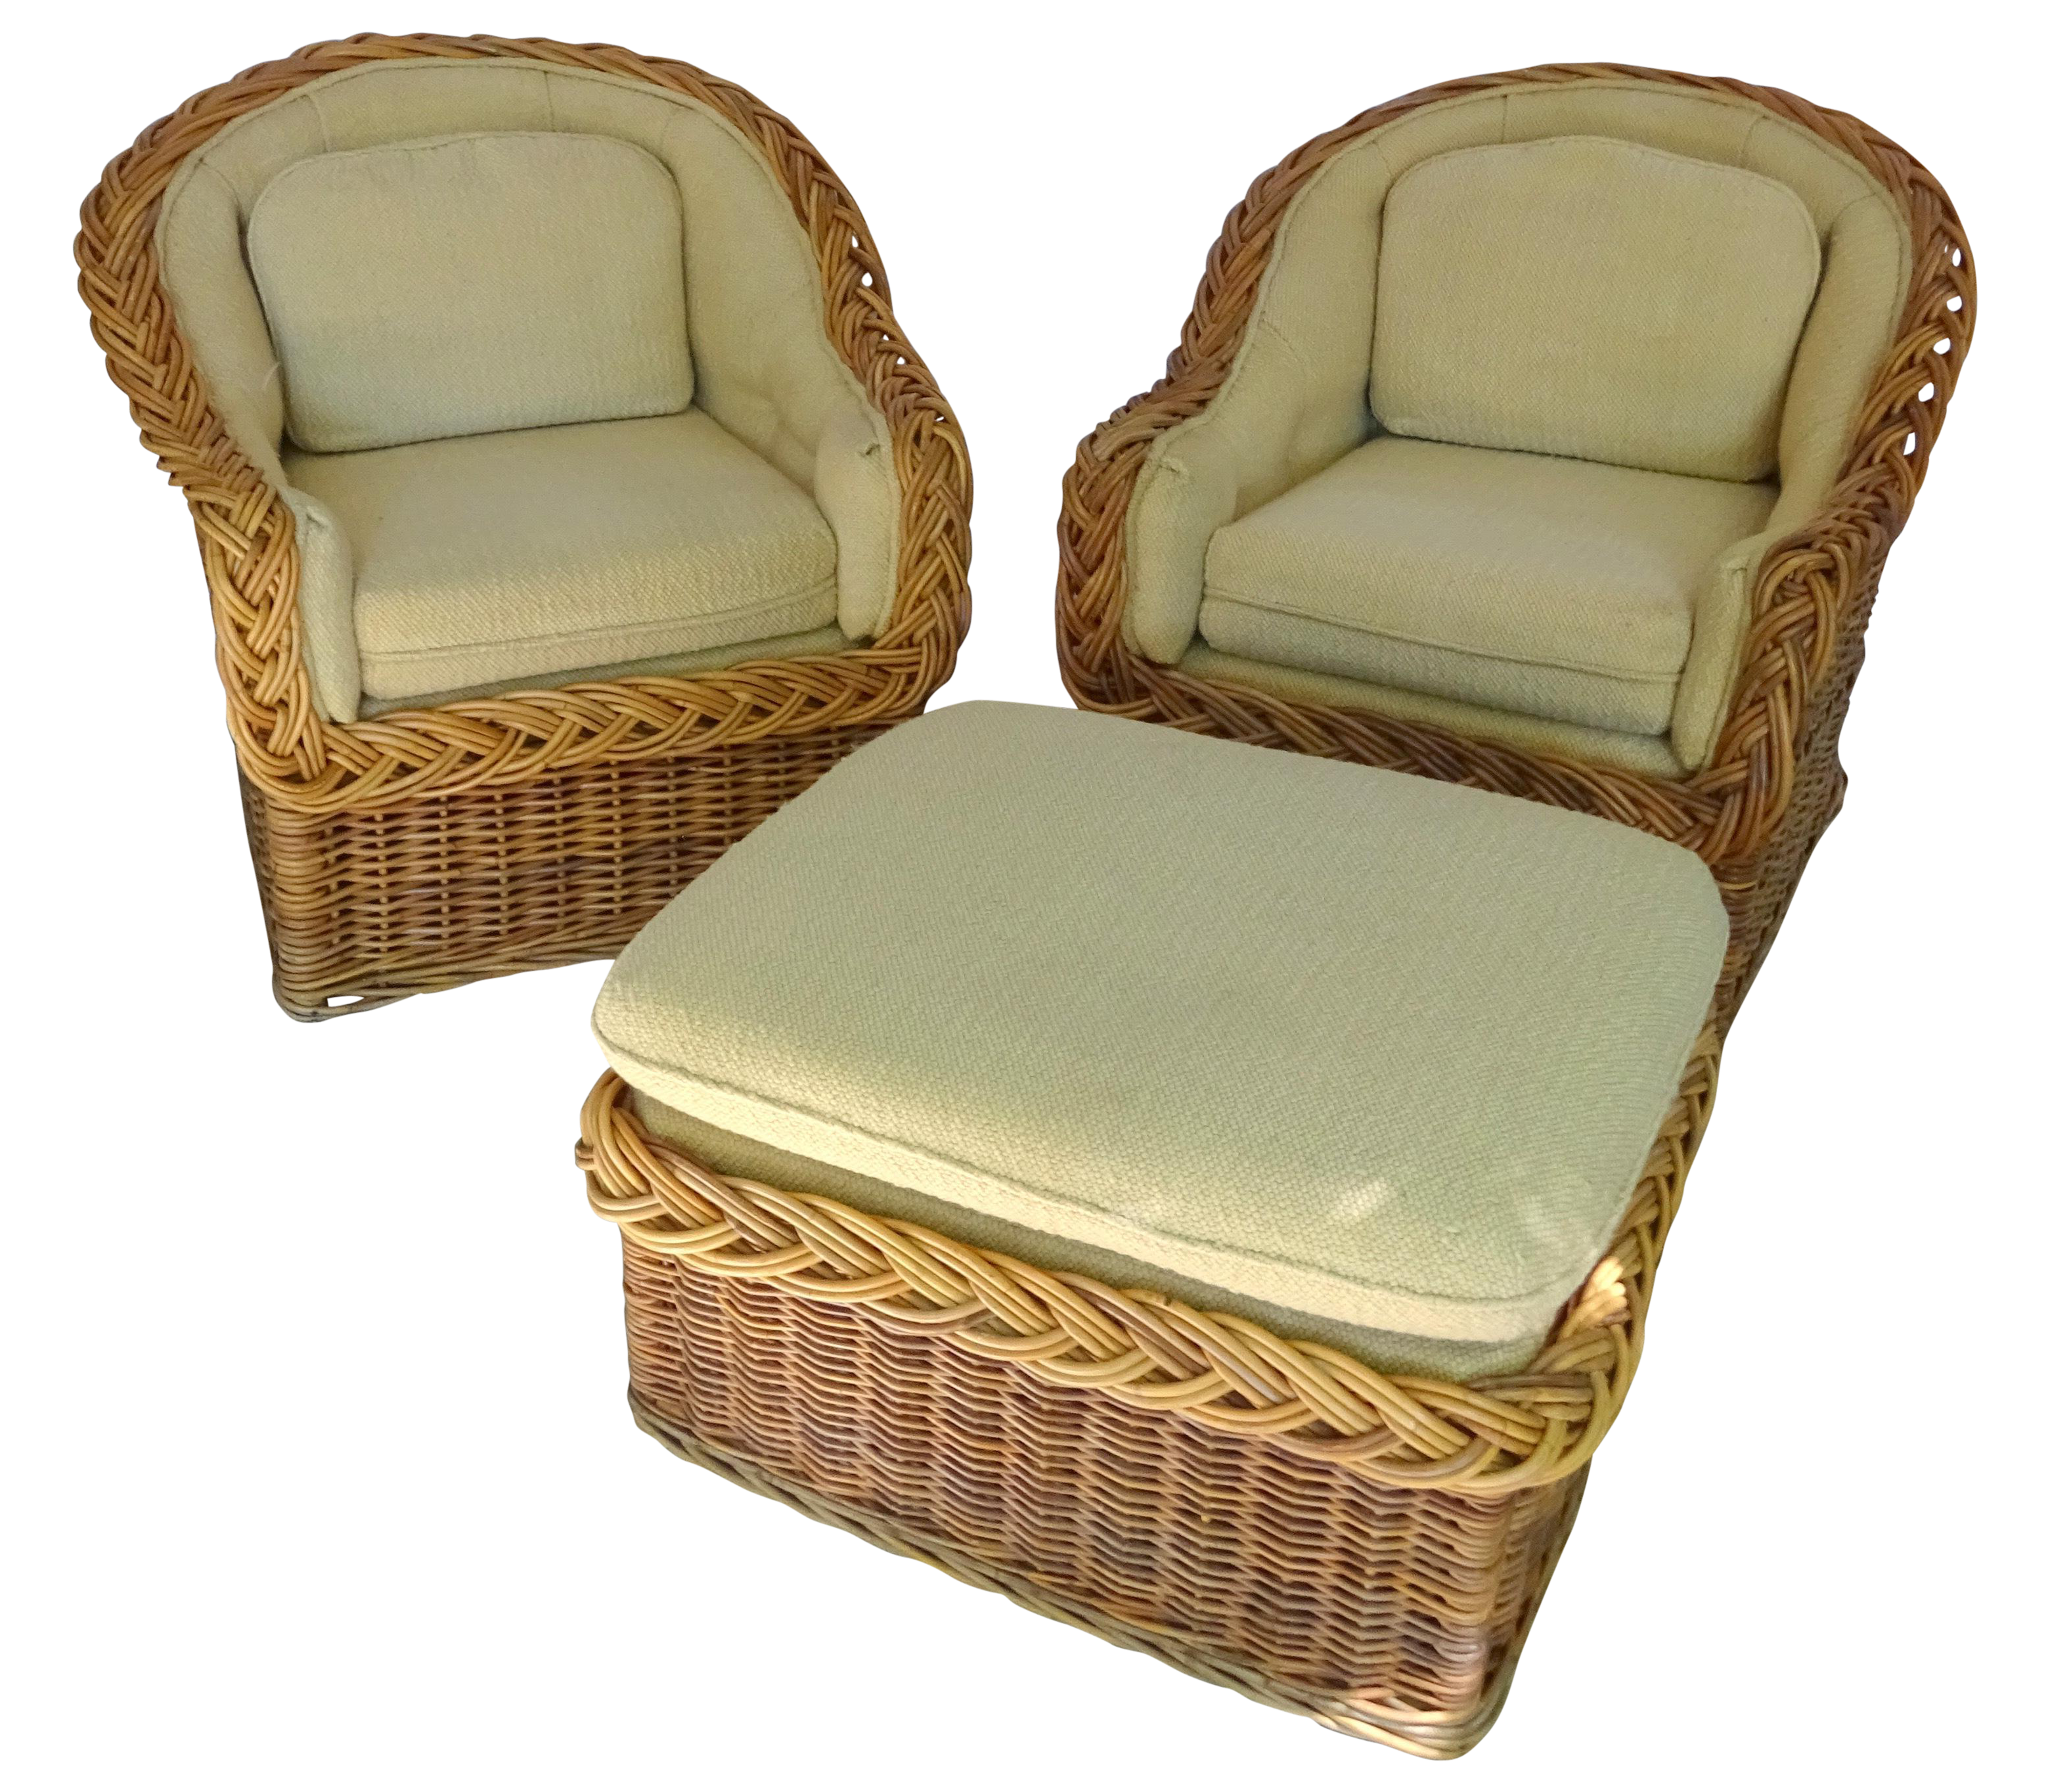 Vintage Wicker Lounge Chairs To Reupholster For LR Nook